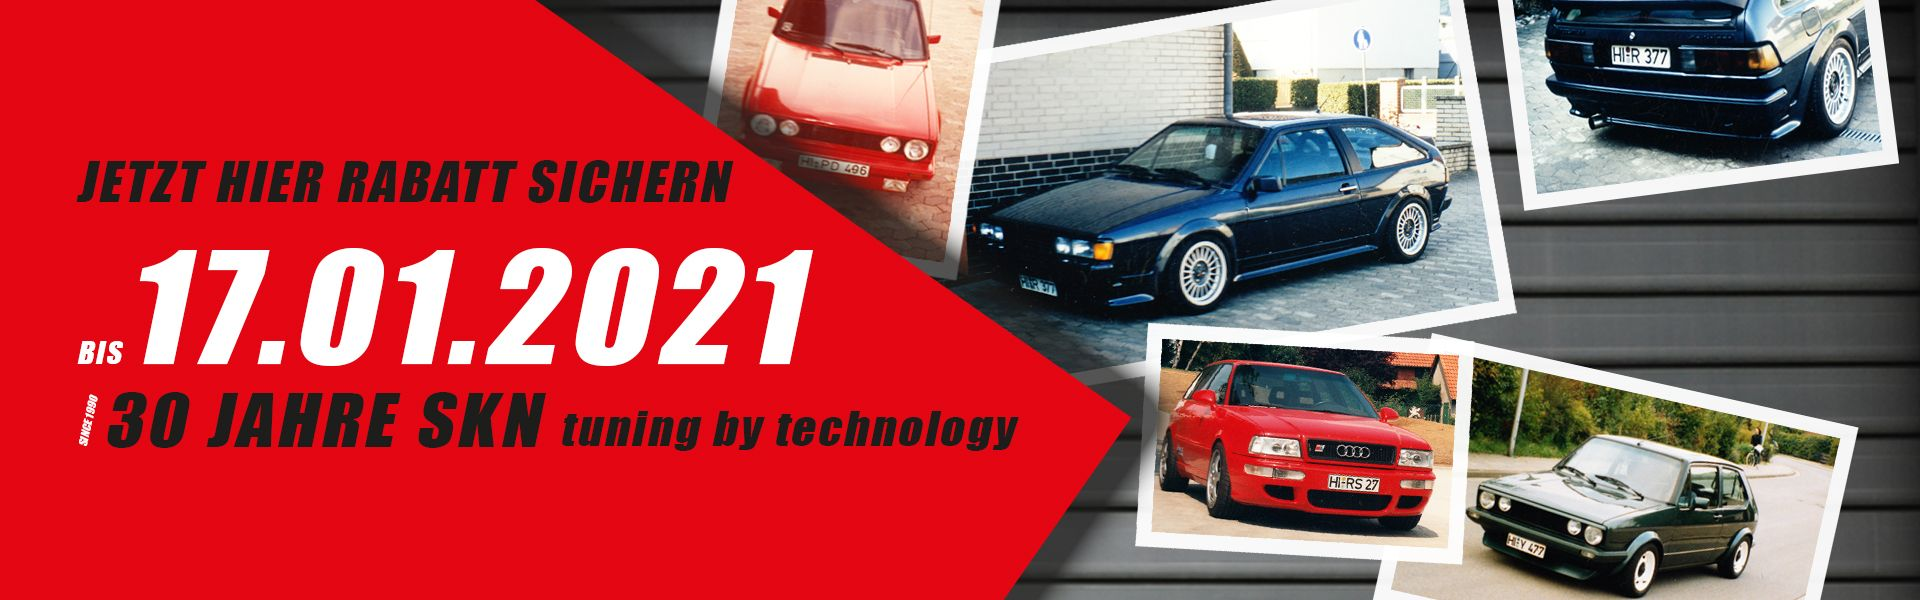 30 Jahre SKN Tuning by Technology